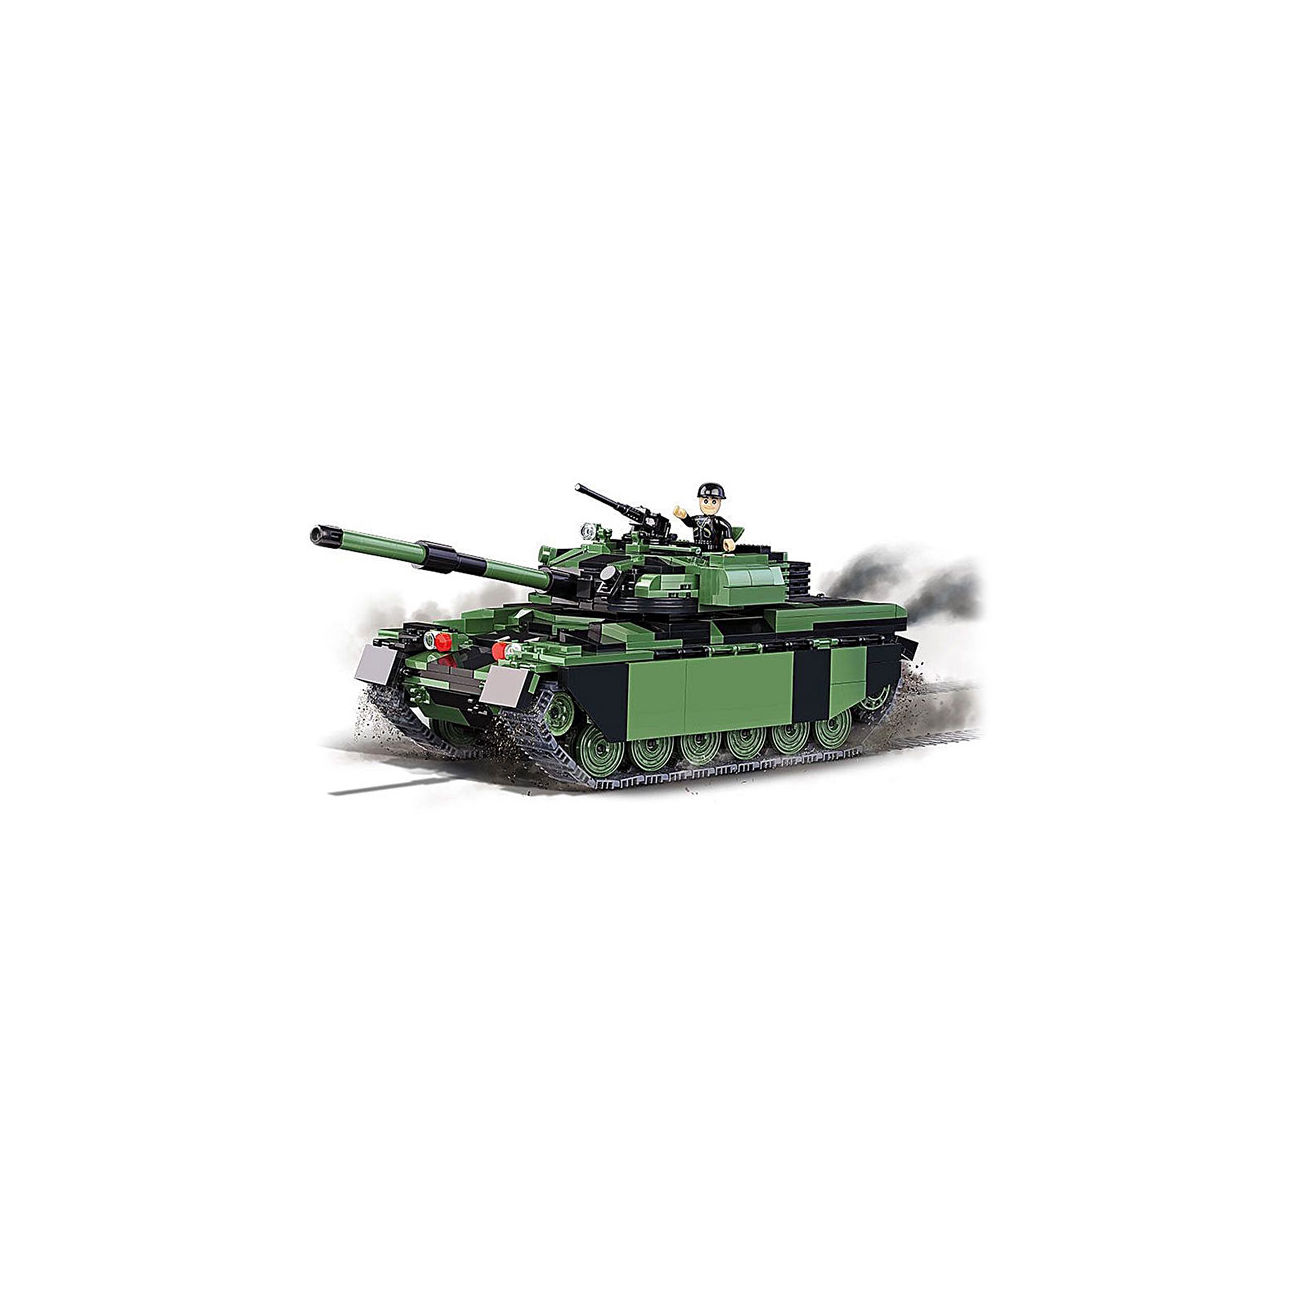 Cobi The Tank Museum Small Army Bausatz Panzer Chieftain 620 Teile 2494 0